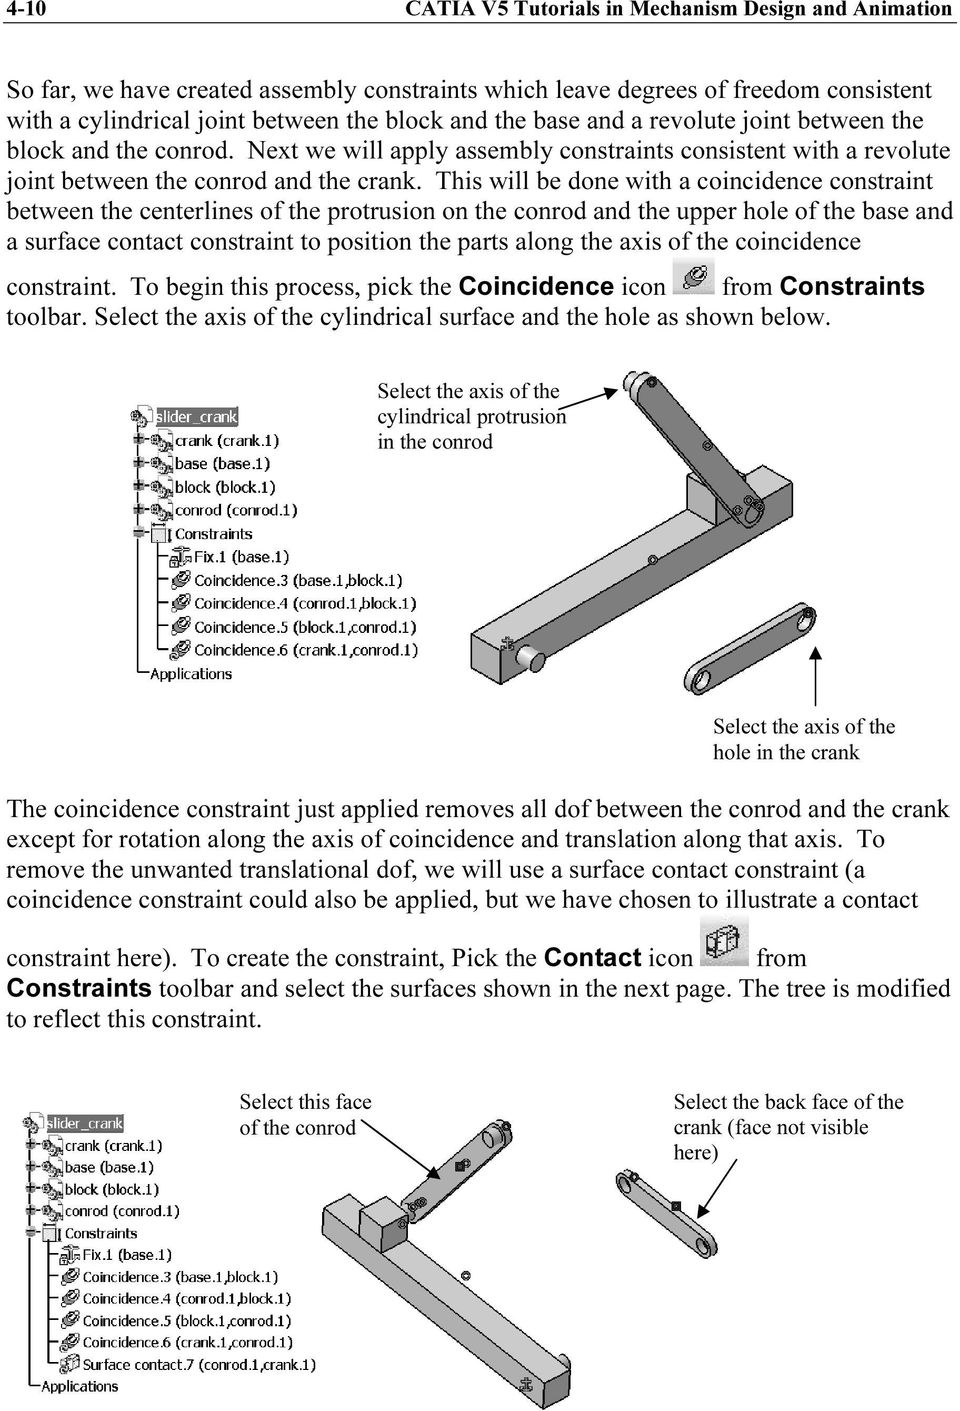 This will be done with a coincidence constraint between the centerlines of the protrusion on the conrod and the upper hole of the base and a surface contact constraint to position the parts along the